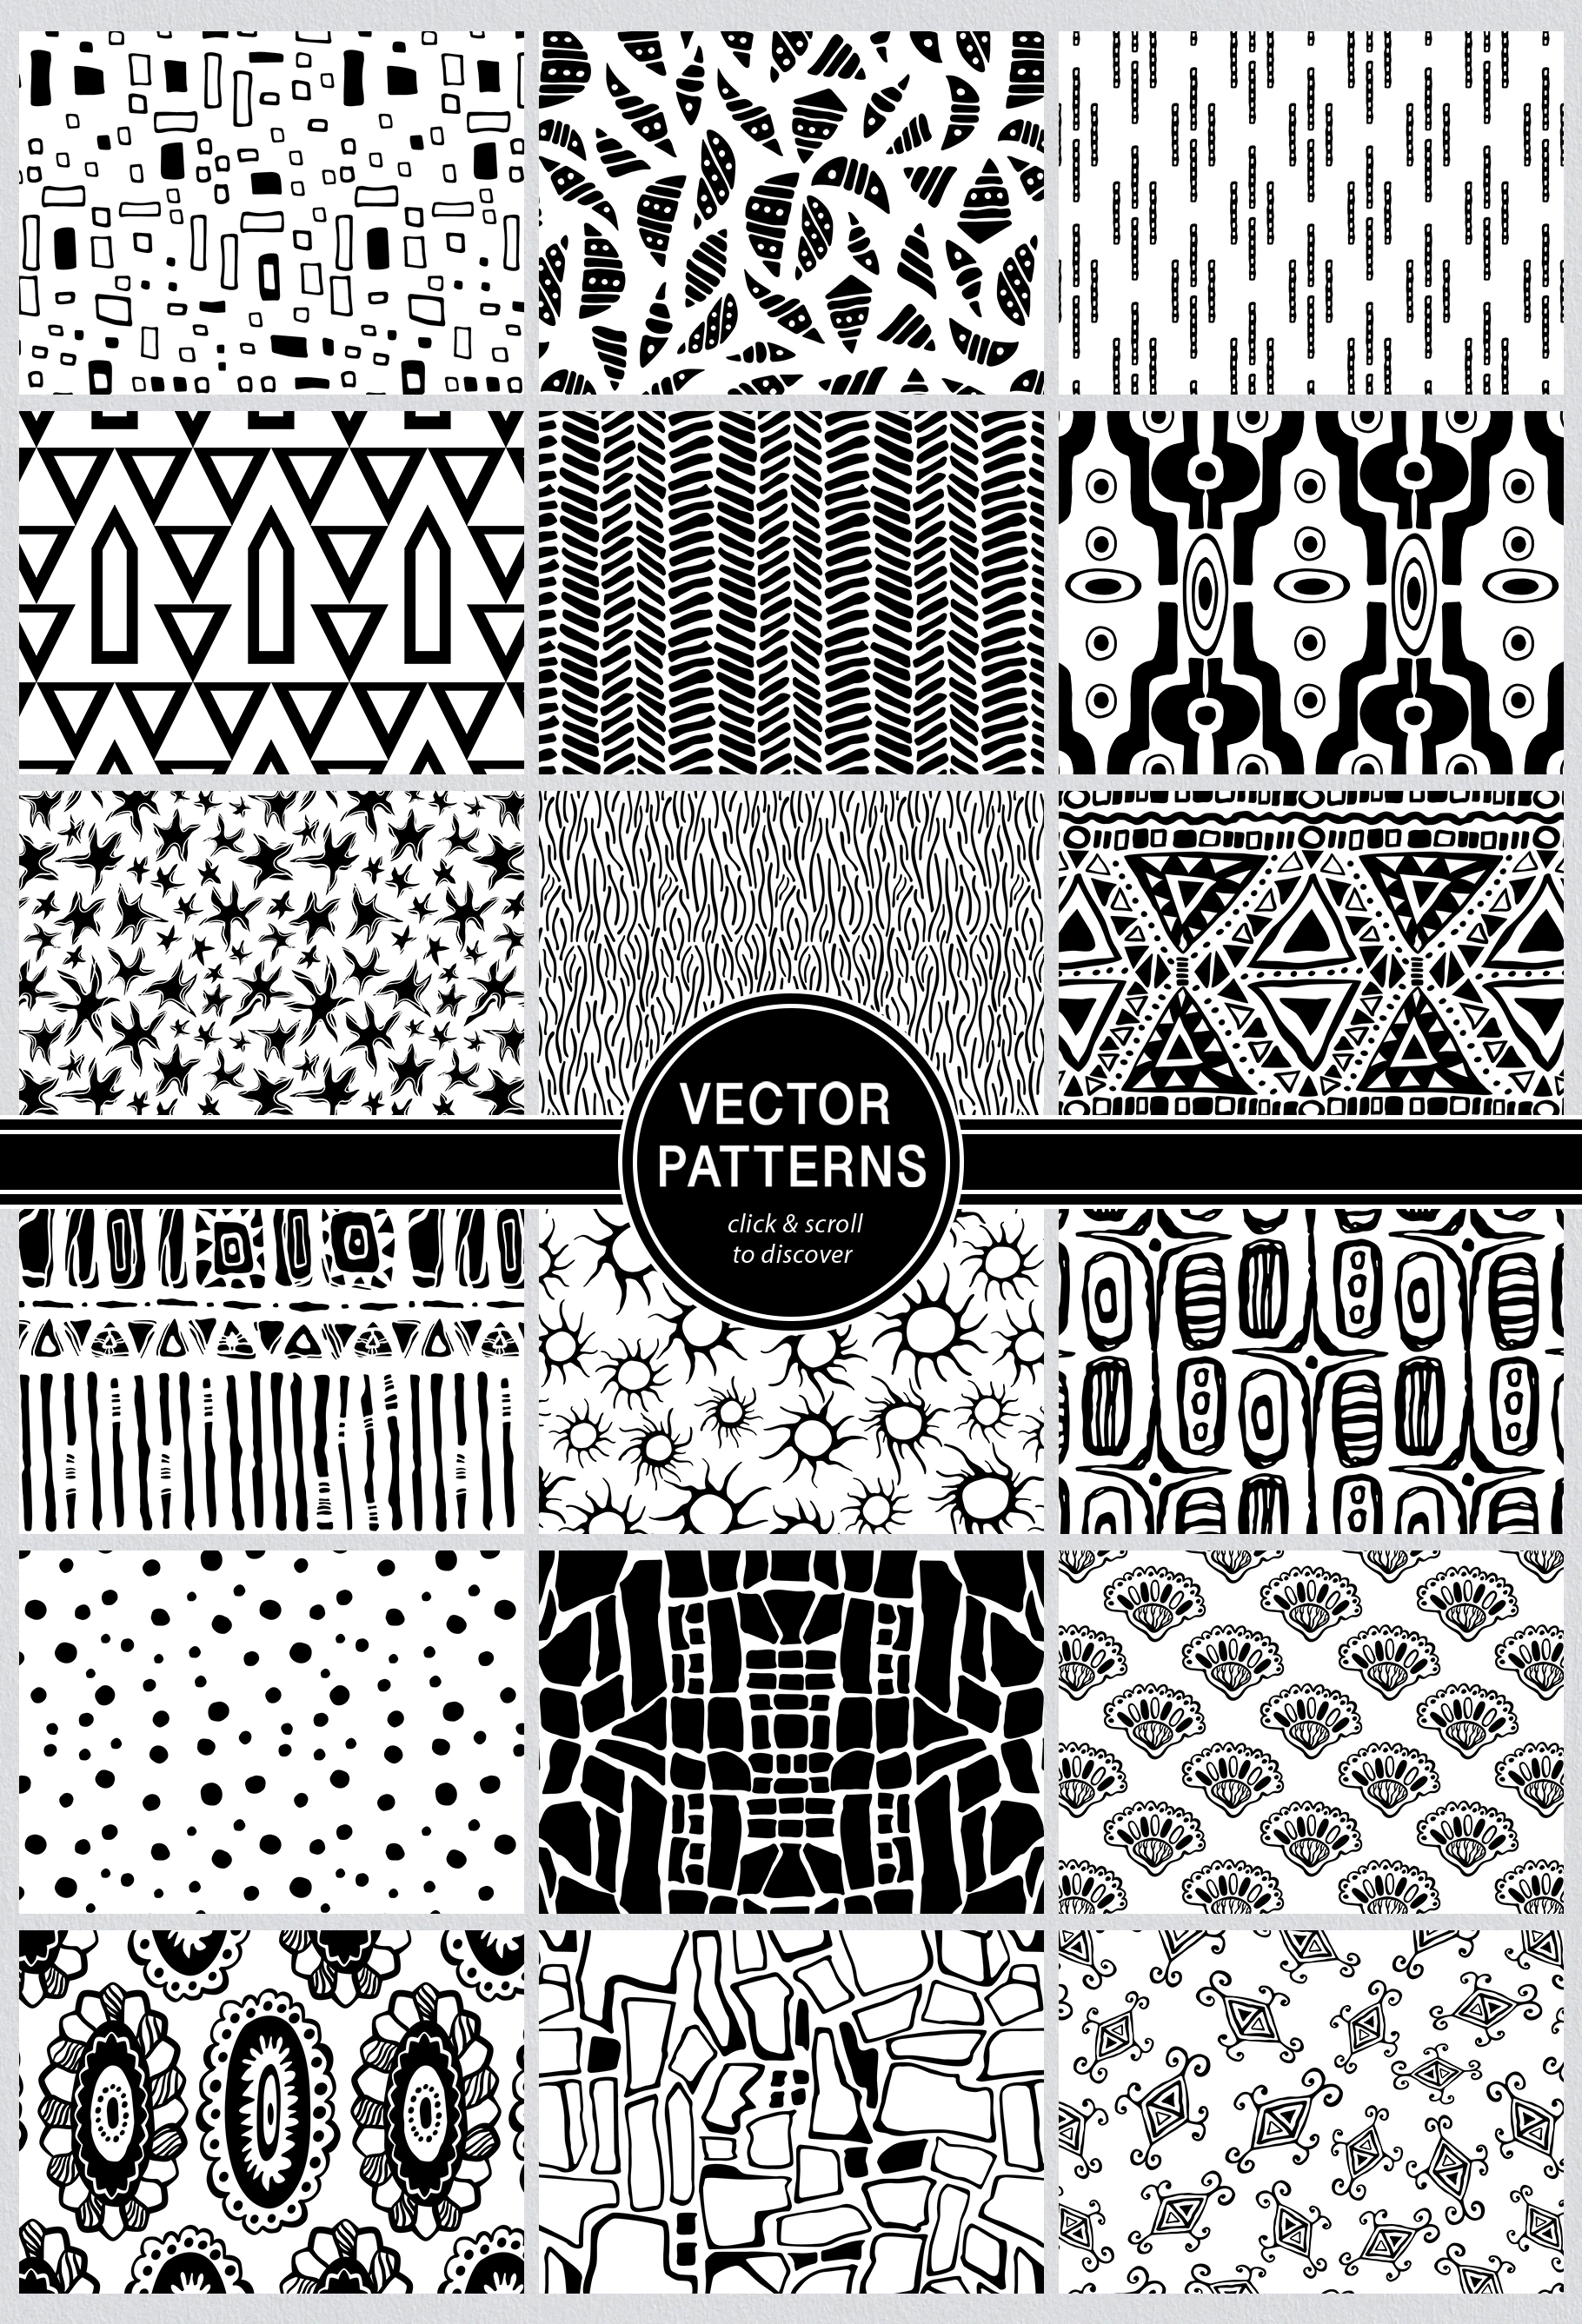 Seamless Textures & Patterns Bundle - Shabby Chic Design Kit example image 23